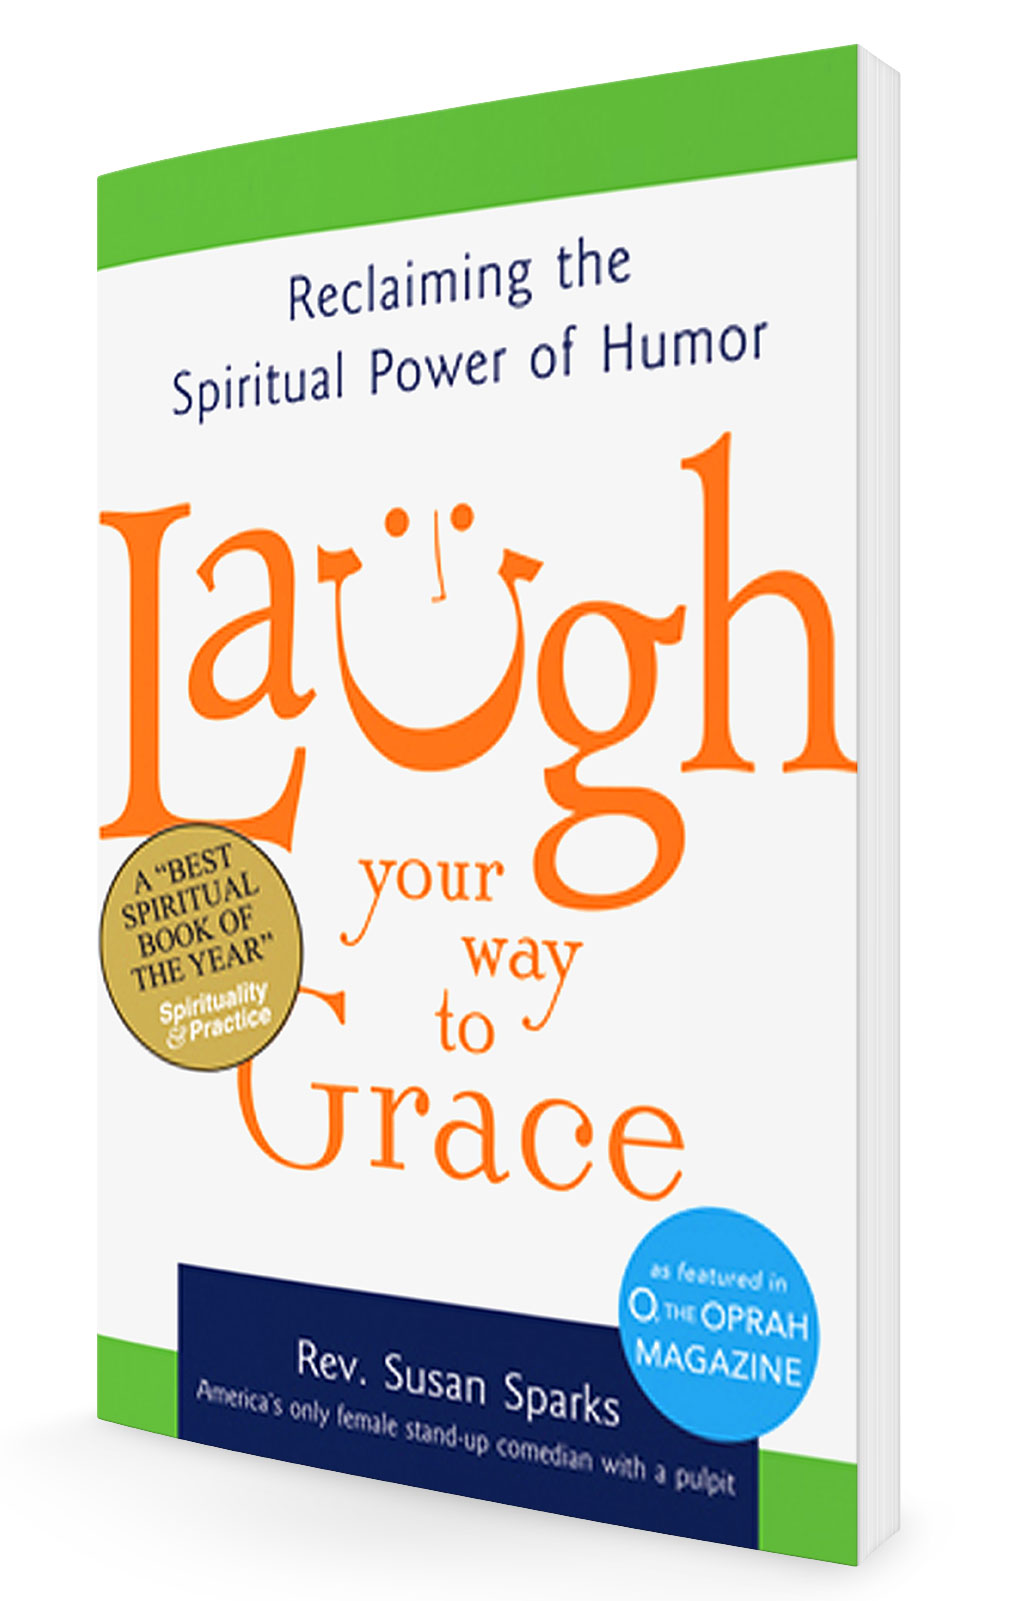 Susan Sparks Laugh Your way to Grace